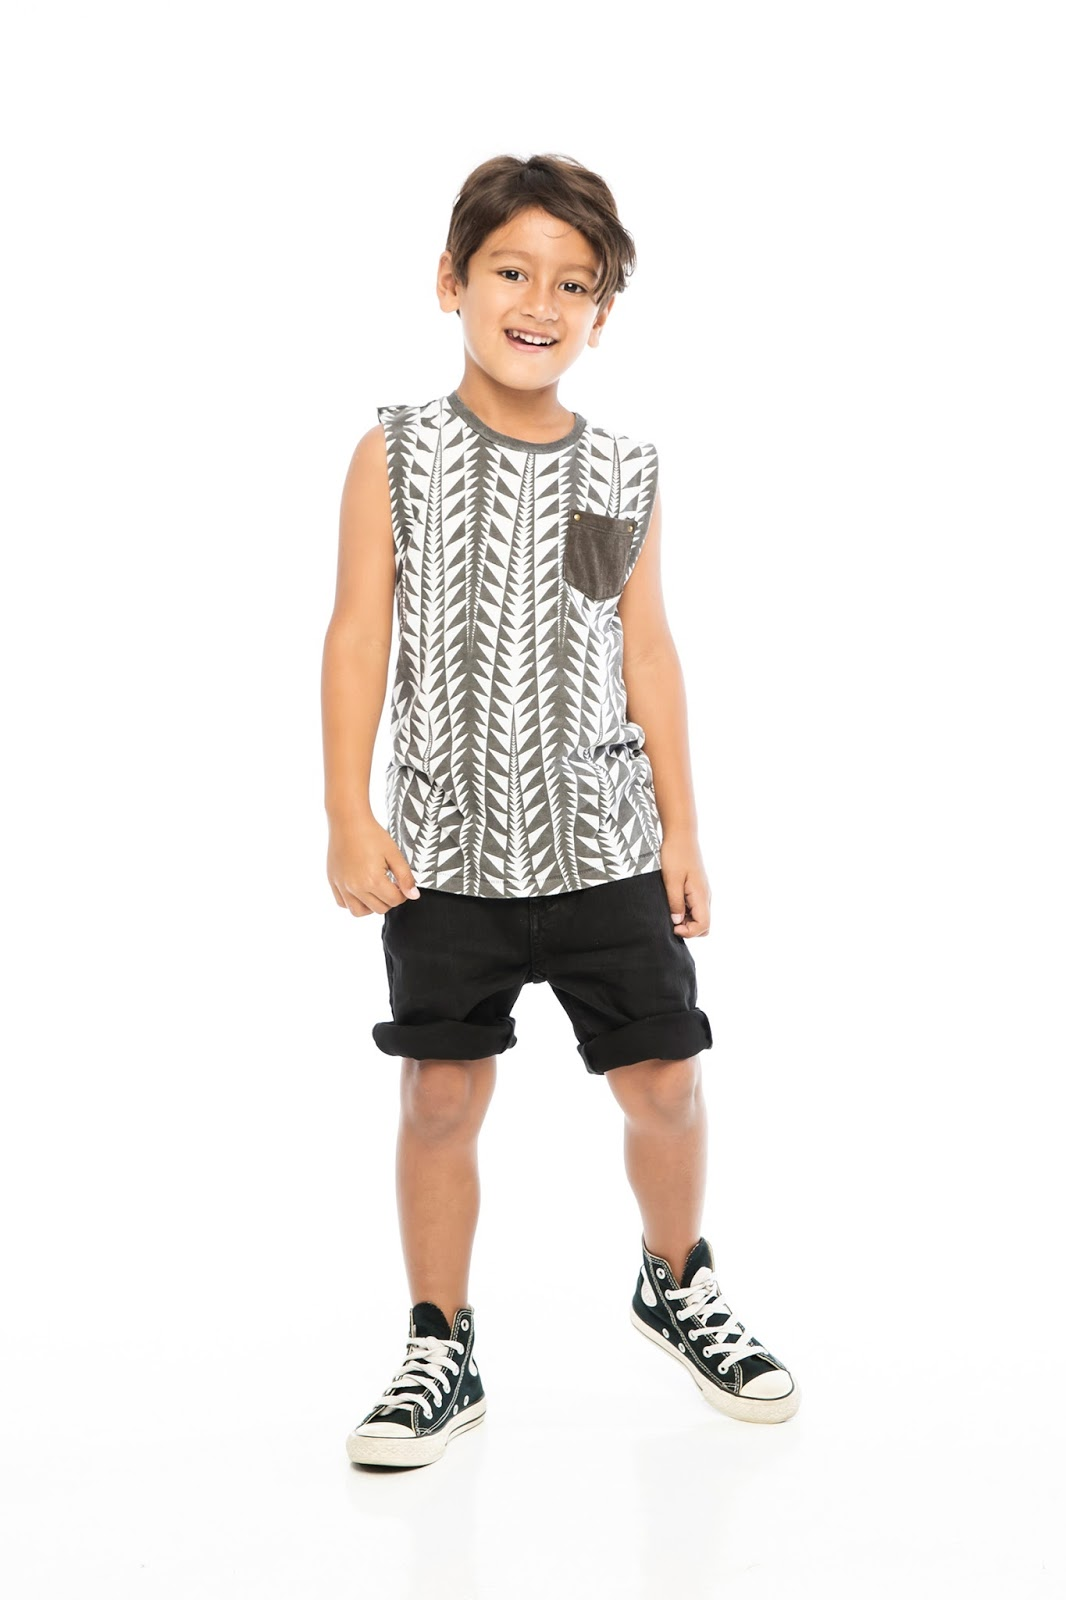 Cool Clothes for Boys from Zuttion  3d20f3ed8bd16